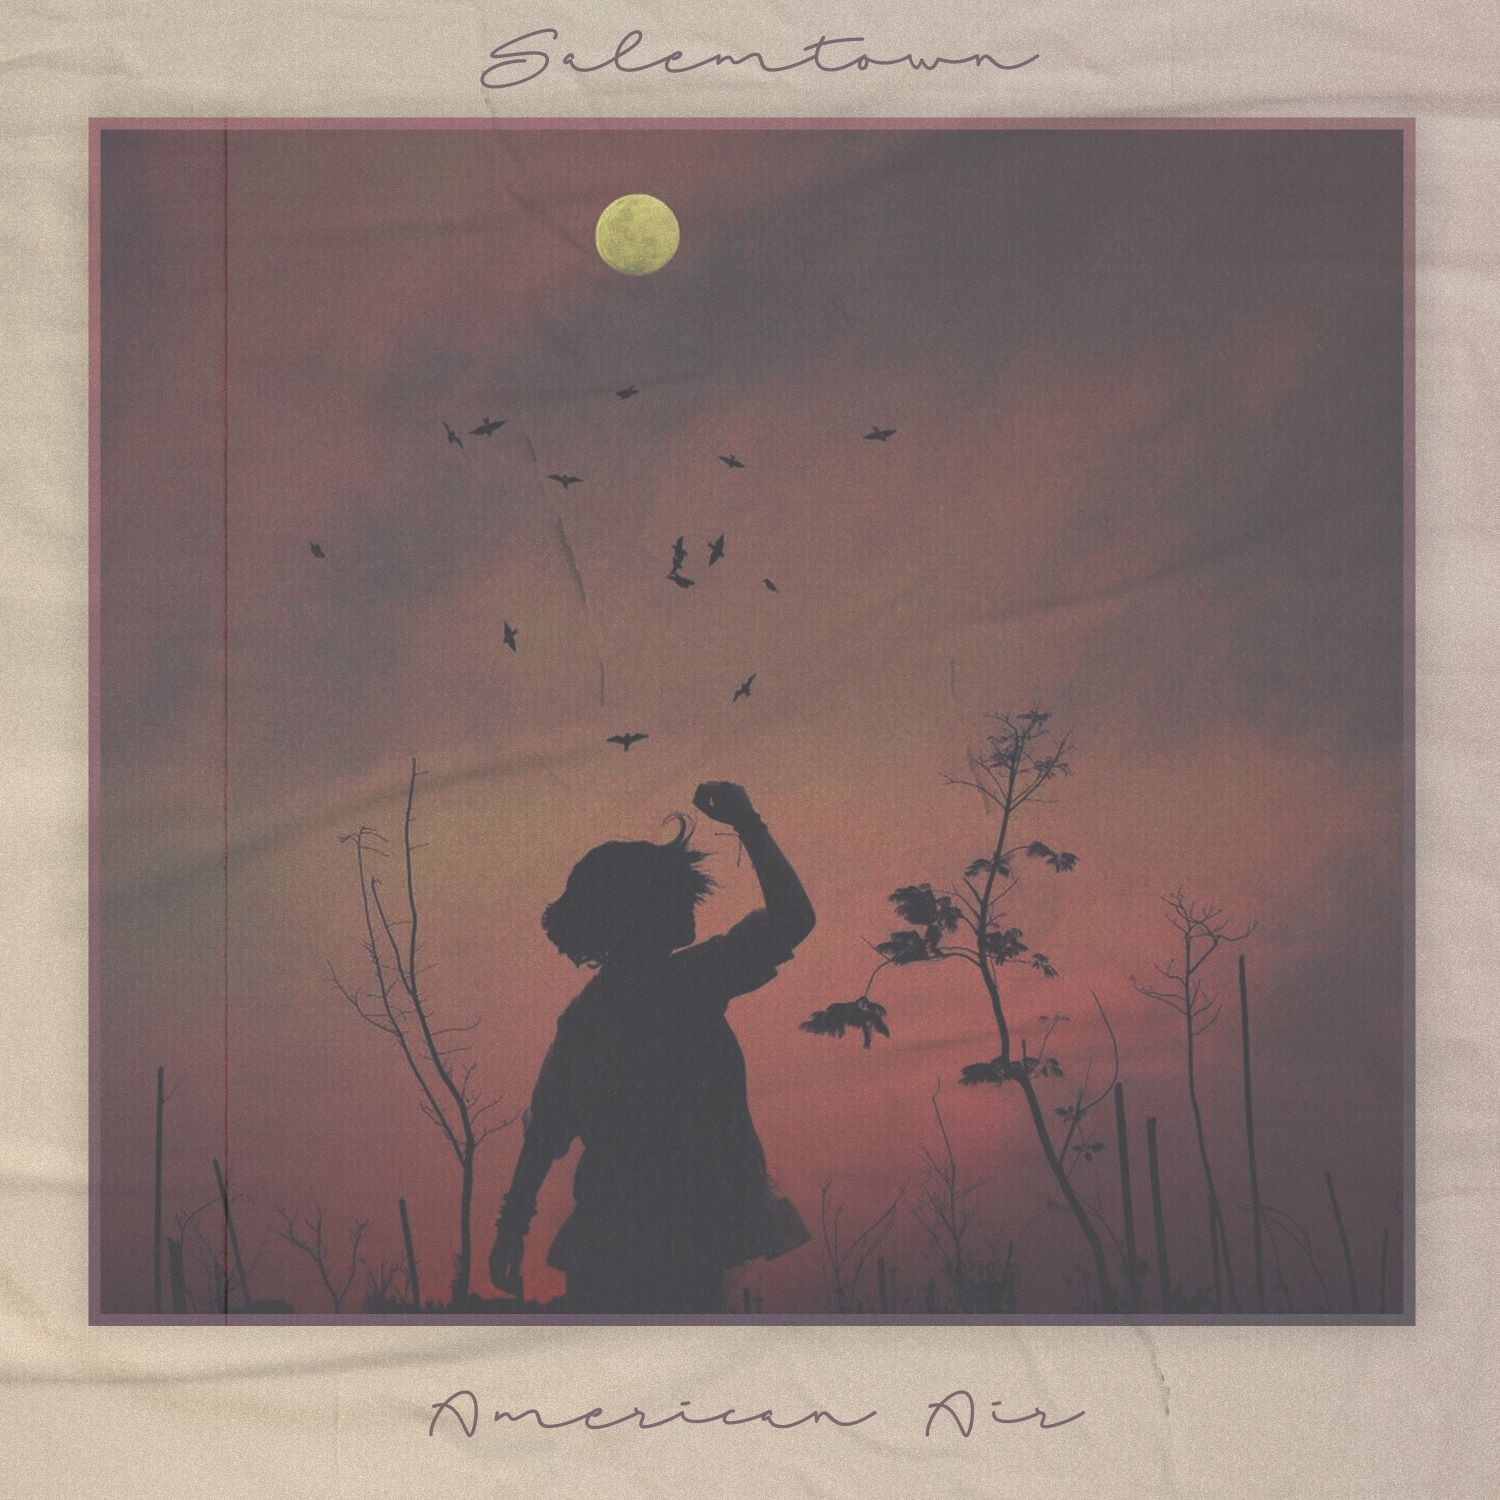 American Air by Salemtown Album Cover